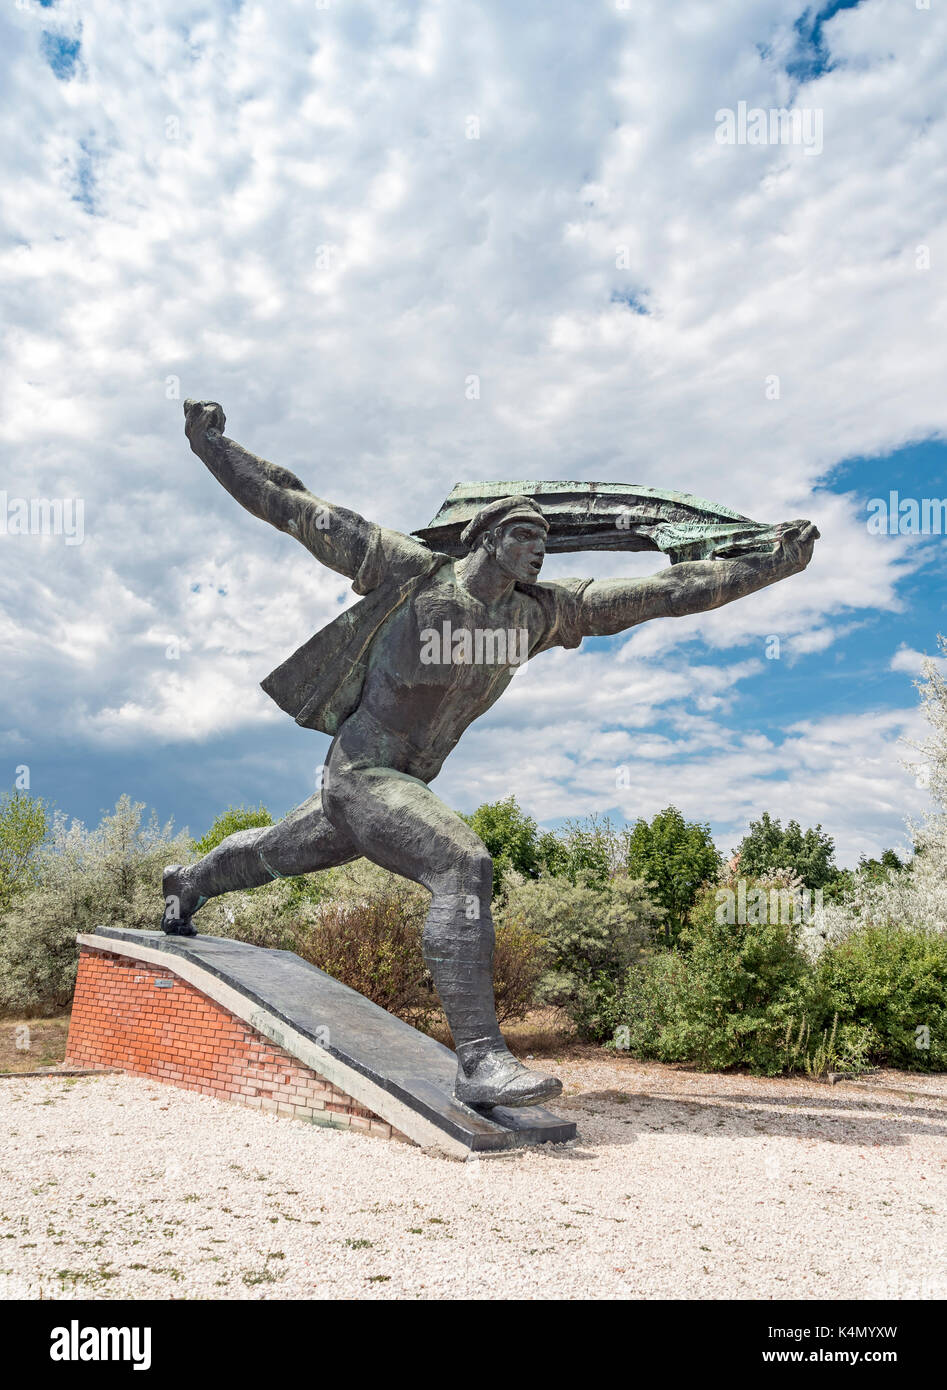 Republic of Councils Monument by Istvan Kiss, StatuePark (Szoborpark), Budapest, Hungary - Stock Image